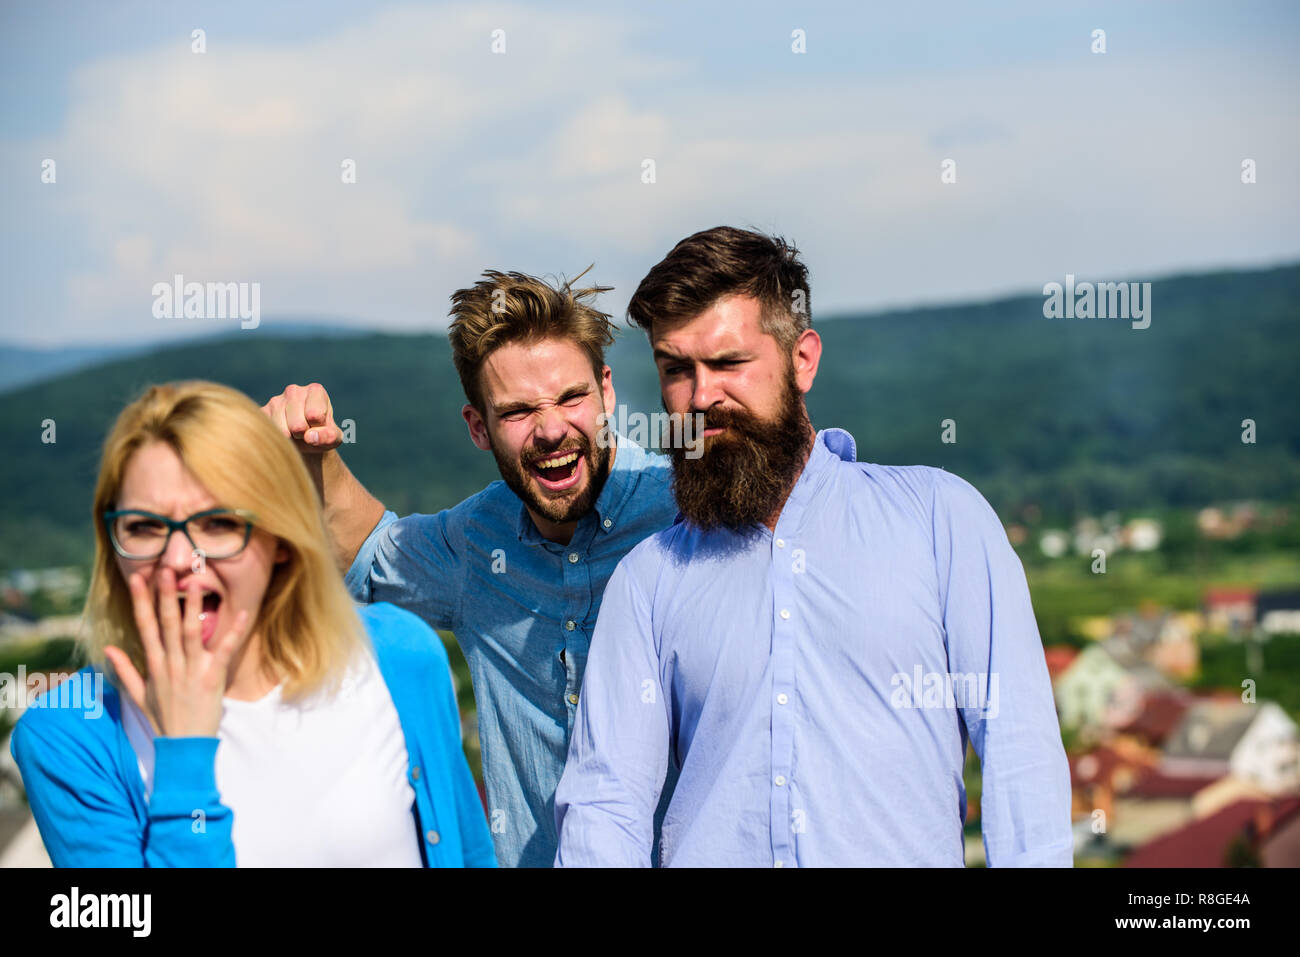 Man aggressive going to attack lover of his girlfriend. Boyfriend full of jealous looks suspiciously at couple. Jealous concept. Man found or detected girlfriend cheating him walking with another man. - Stock Image